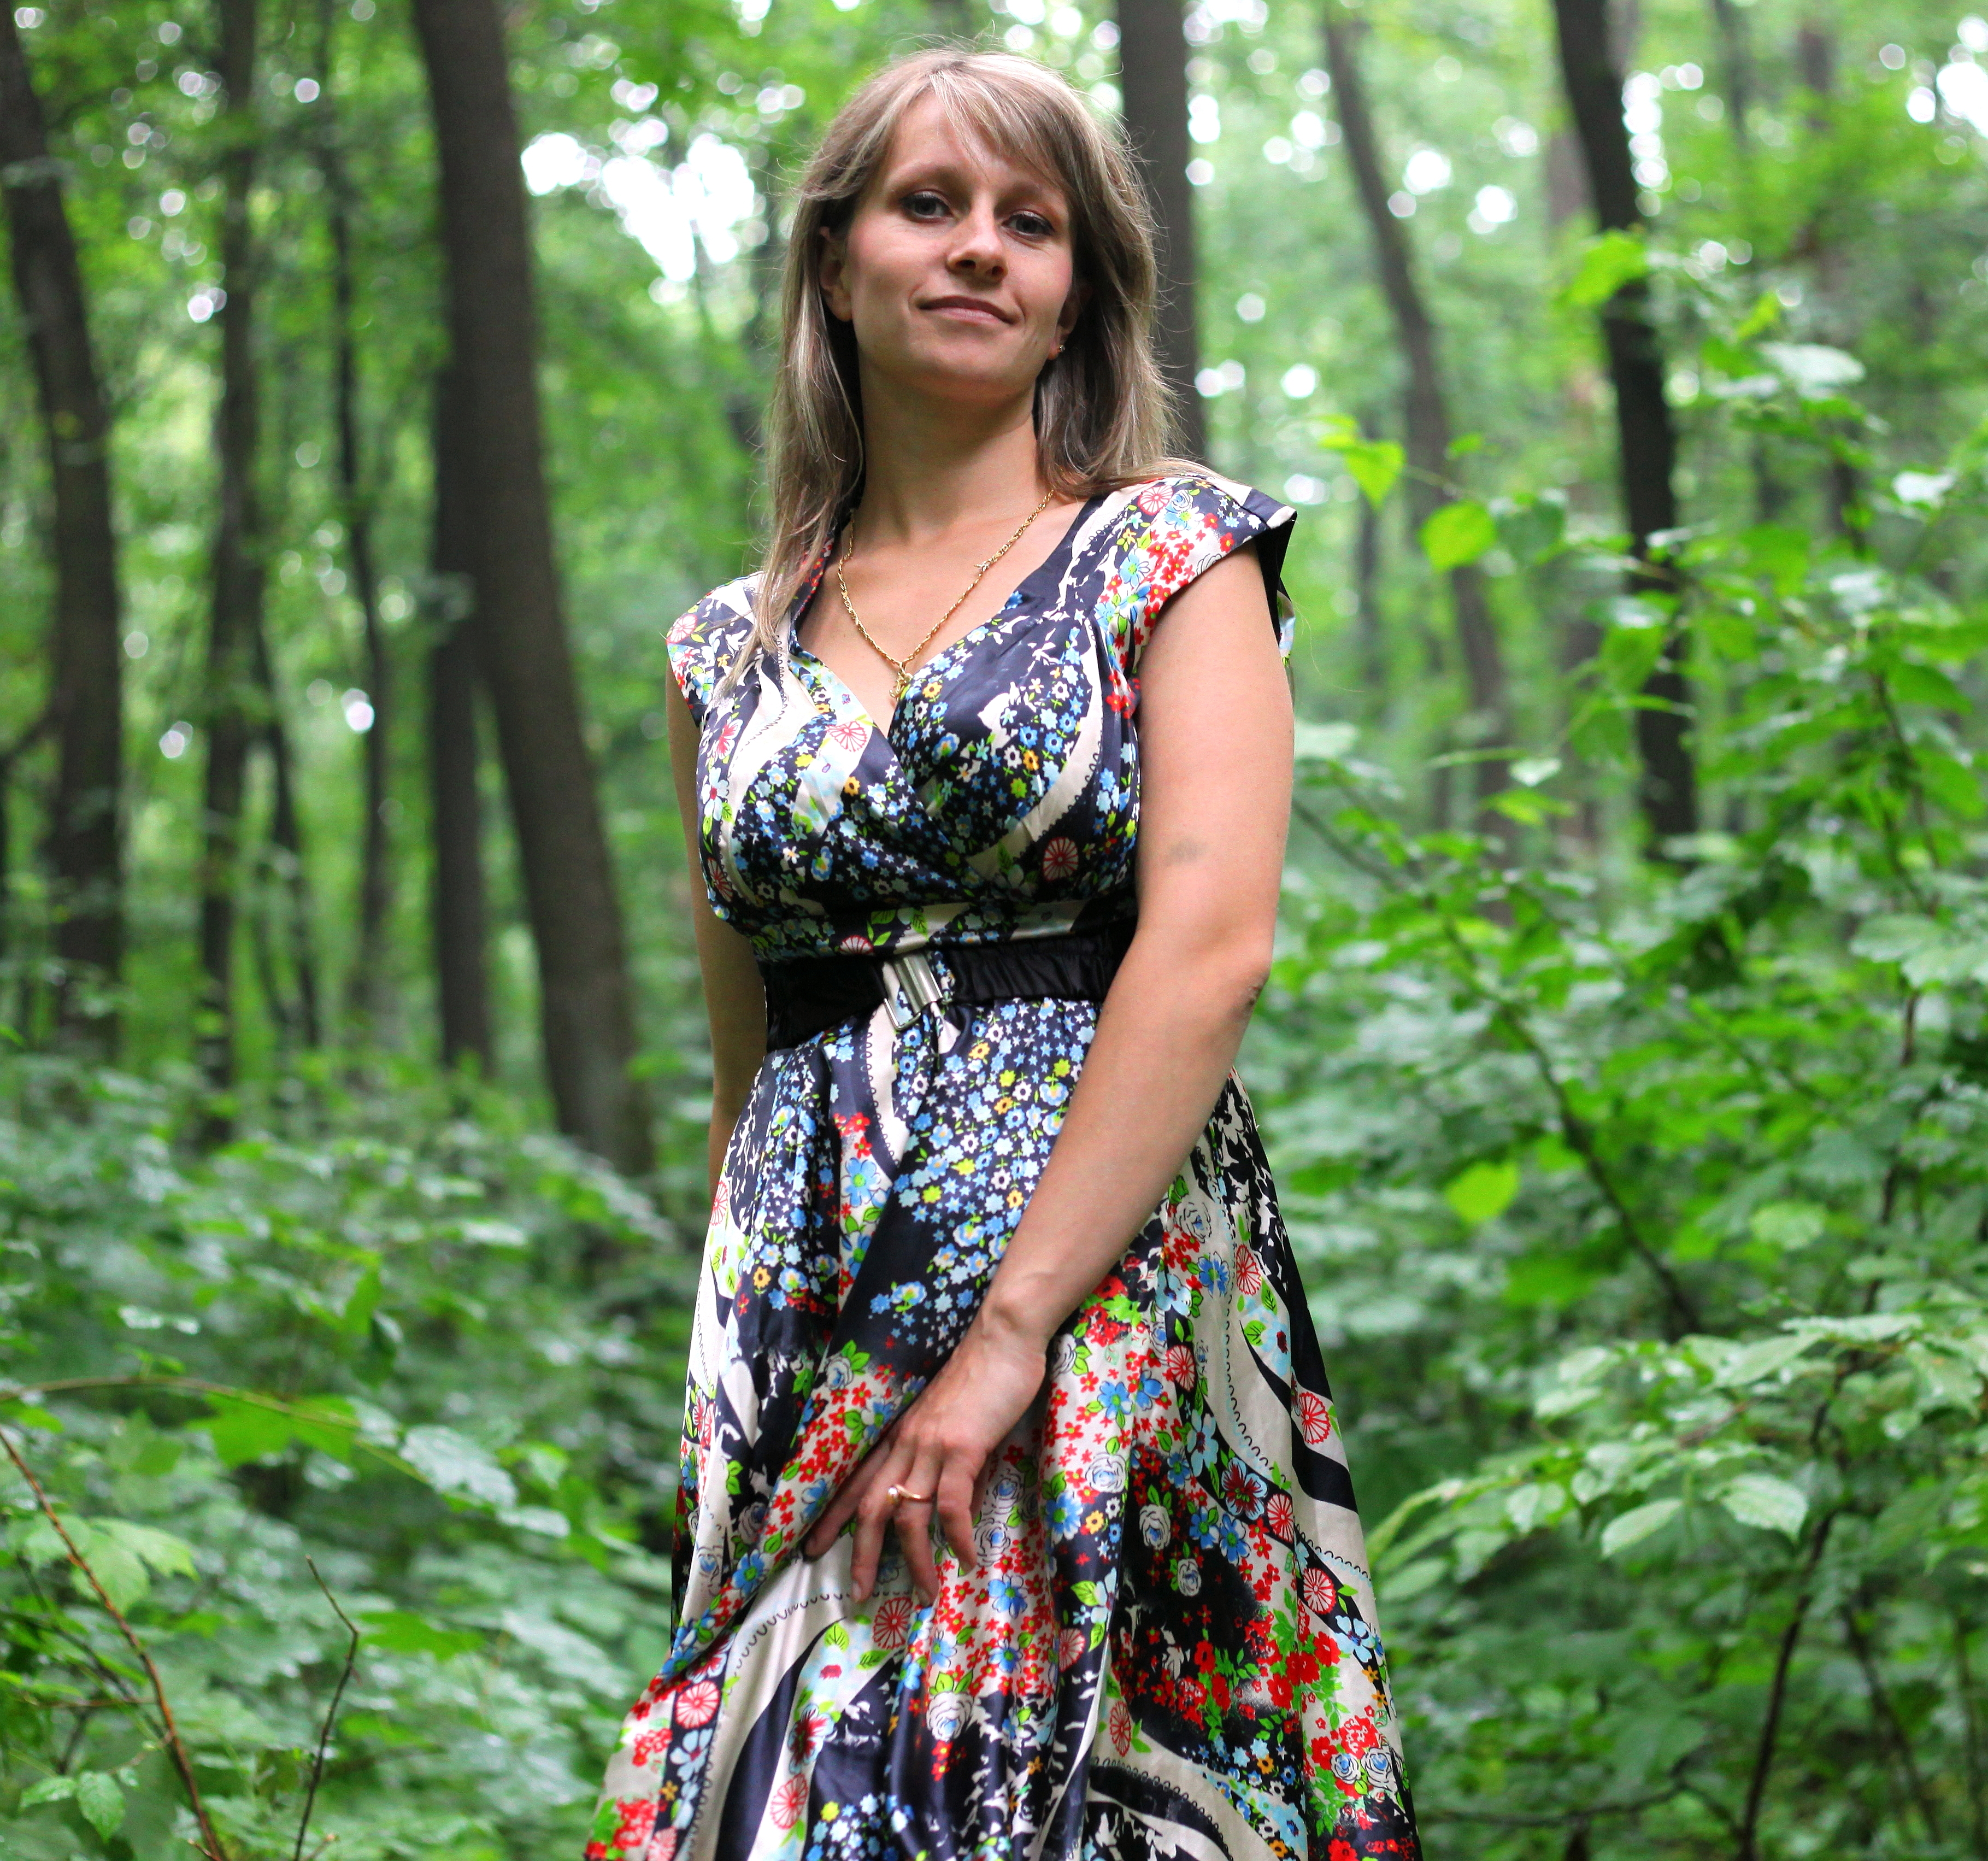 a young Catholic woman wearing a colorful dress in a forest in June 2013, portrait 8/9